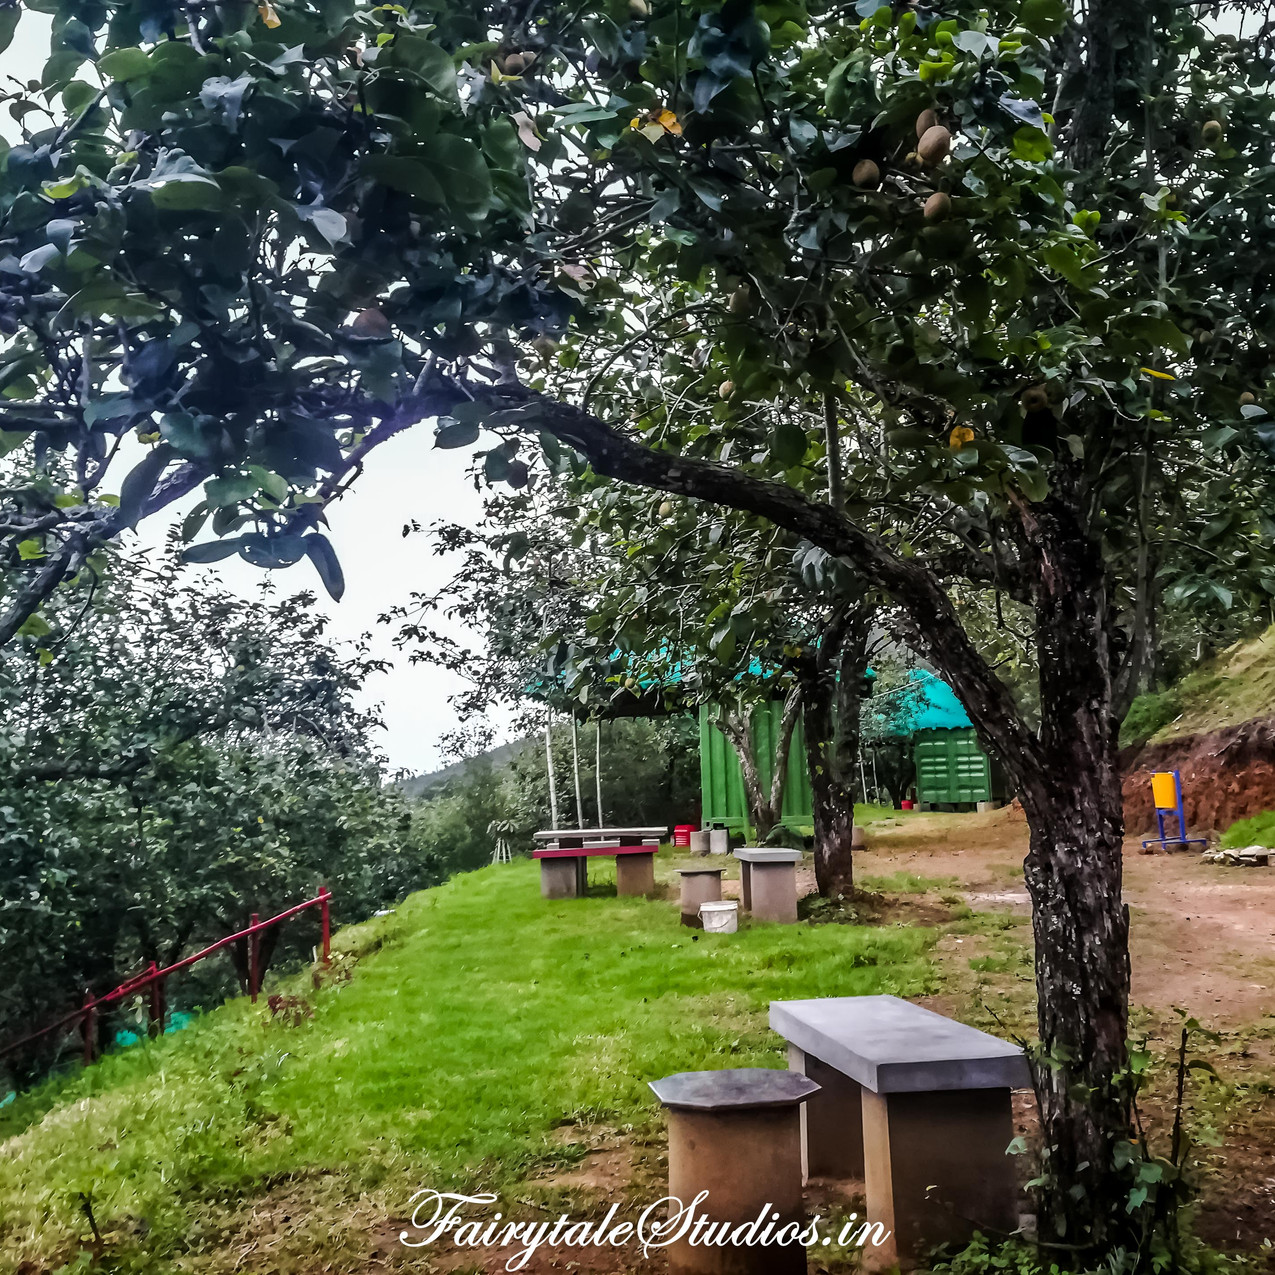 Property_Pear County Kodaikanal_Fairytale Travels (22)